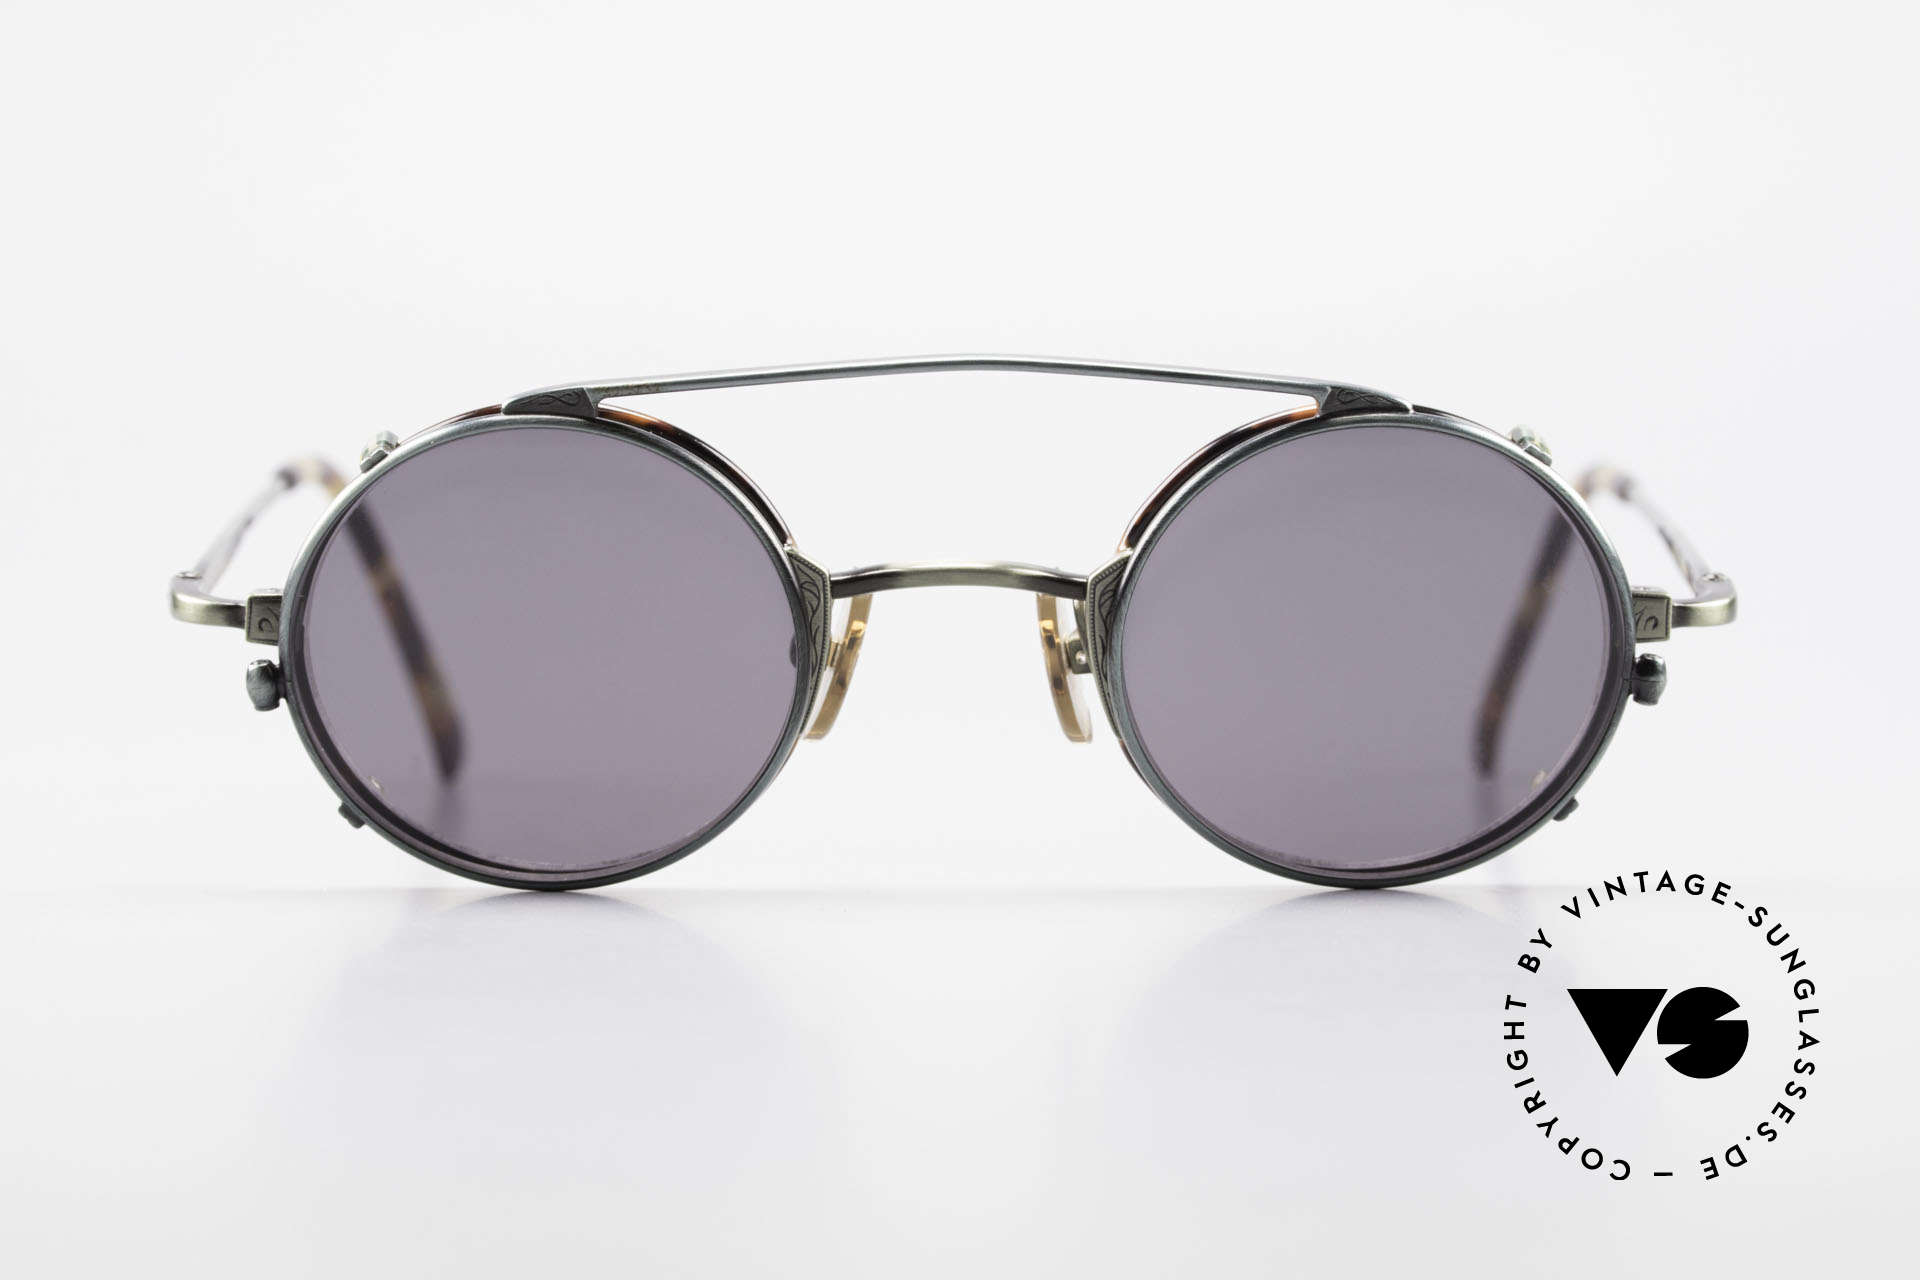 Freudenhaus Tori Small Round Frame Clip On, costly frame, top notch craftsmanship (from Japan), Made for Men and Women